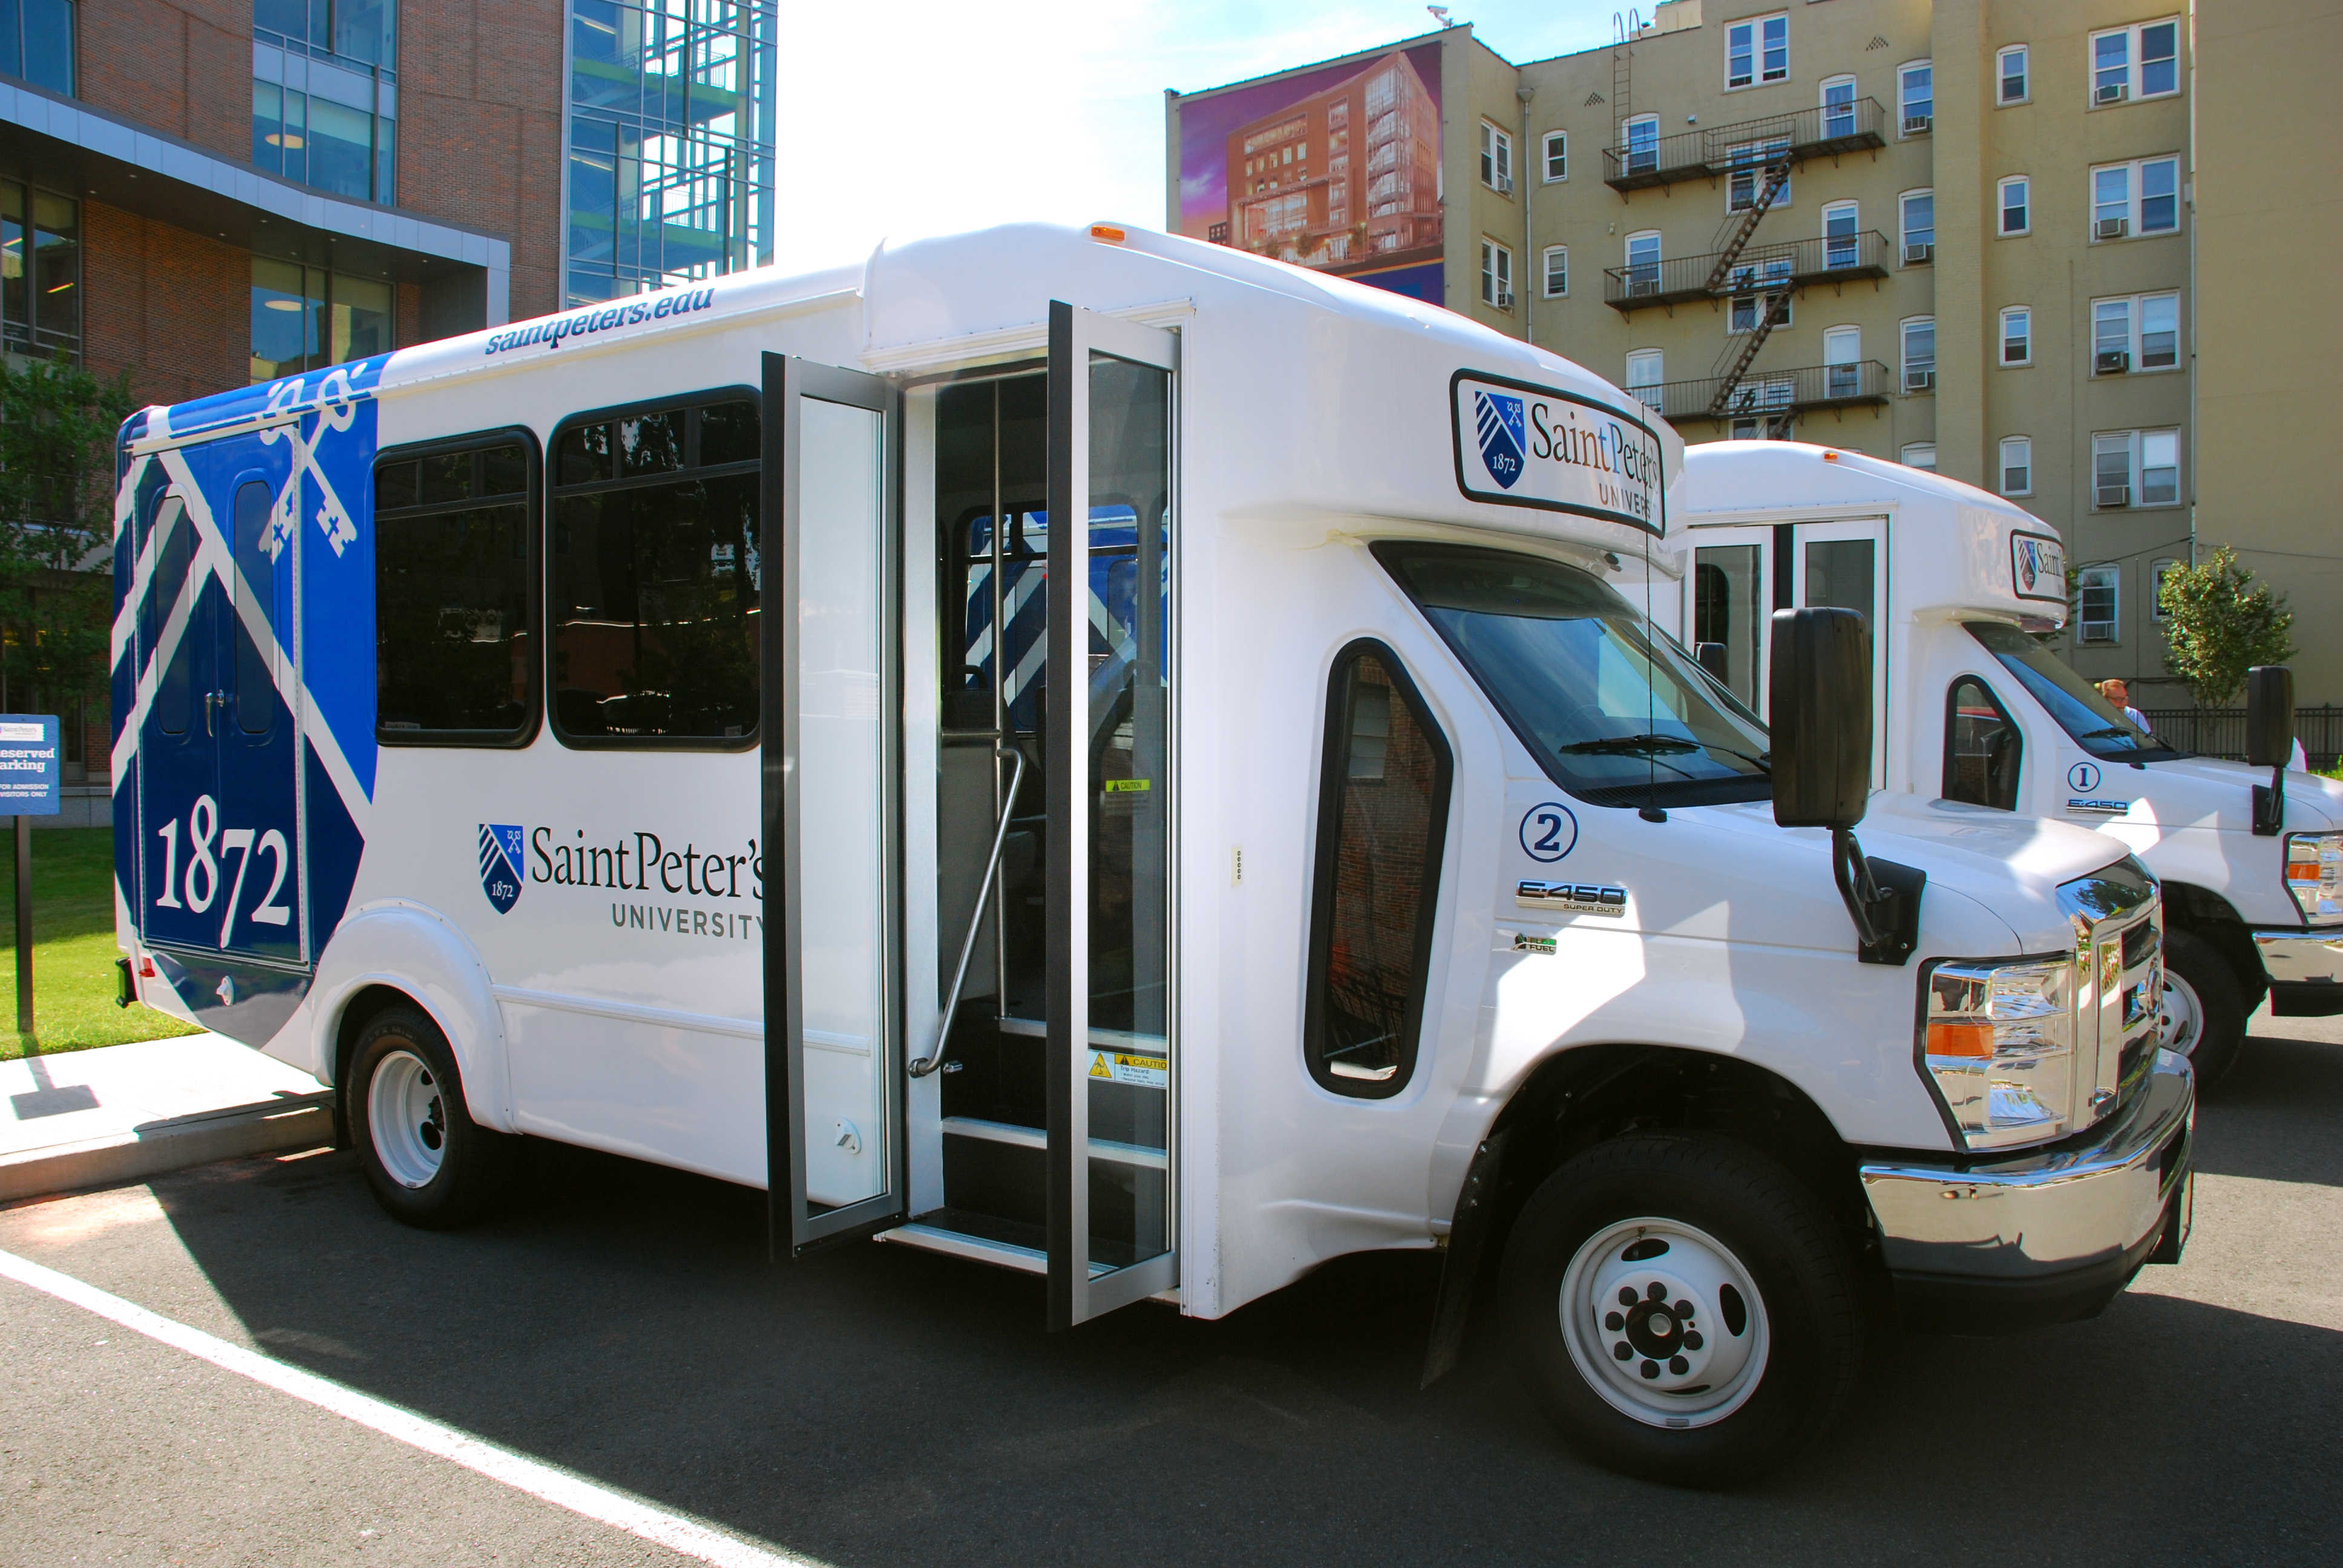 Saint Peter's University shuttle buses - operated by Campus Safety